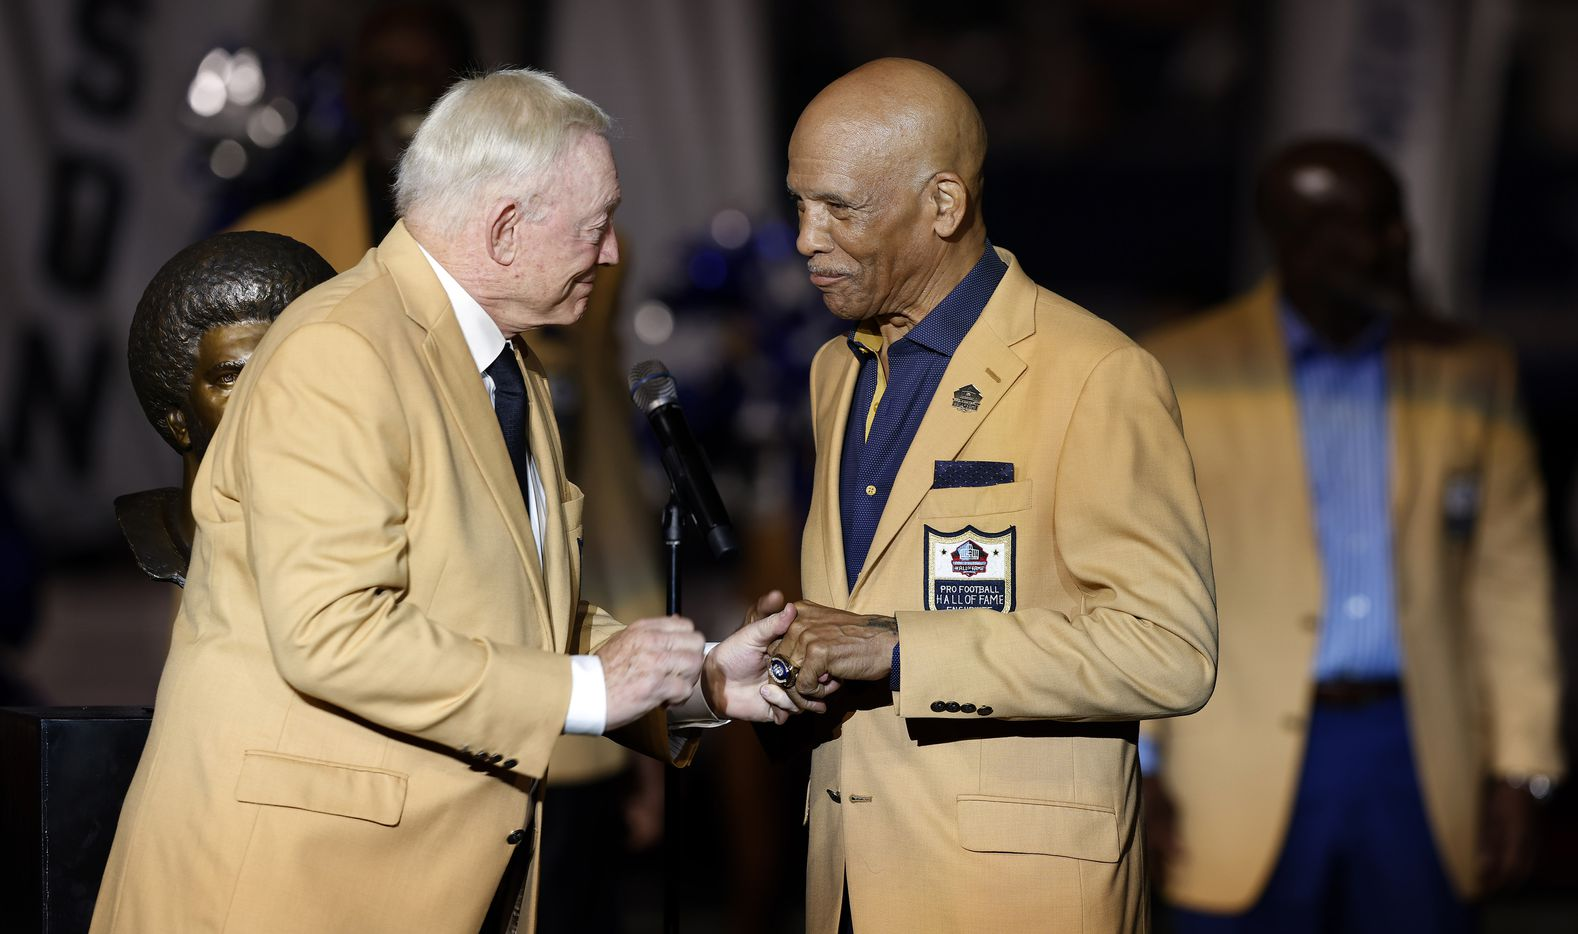 Dallas Cowboys owner Jerry Jones (left) slides the ring onto the finger of Cowboys Pro Football Hall of Famer Drew Pearson during the ring ceremony at AT&T Stadium in Arlington, Monday, September 27, 2021. (Tom Fox/The Dallas Morning News)